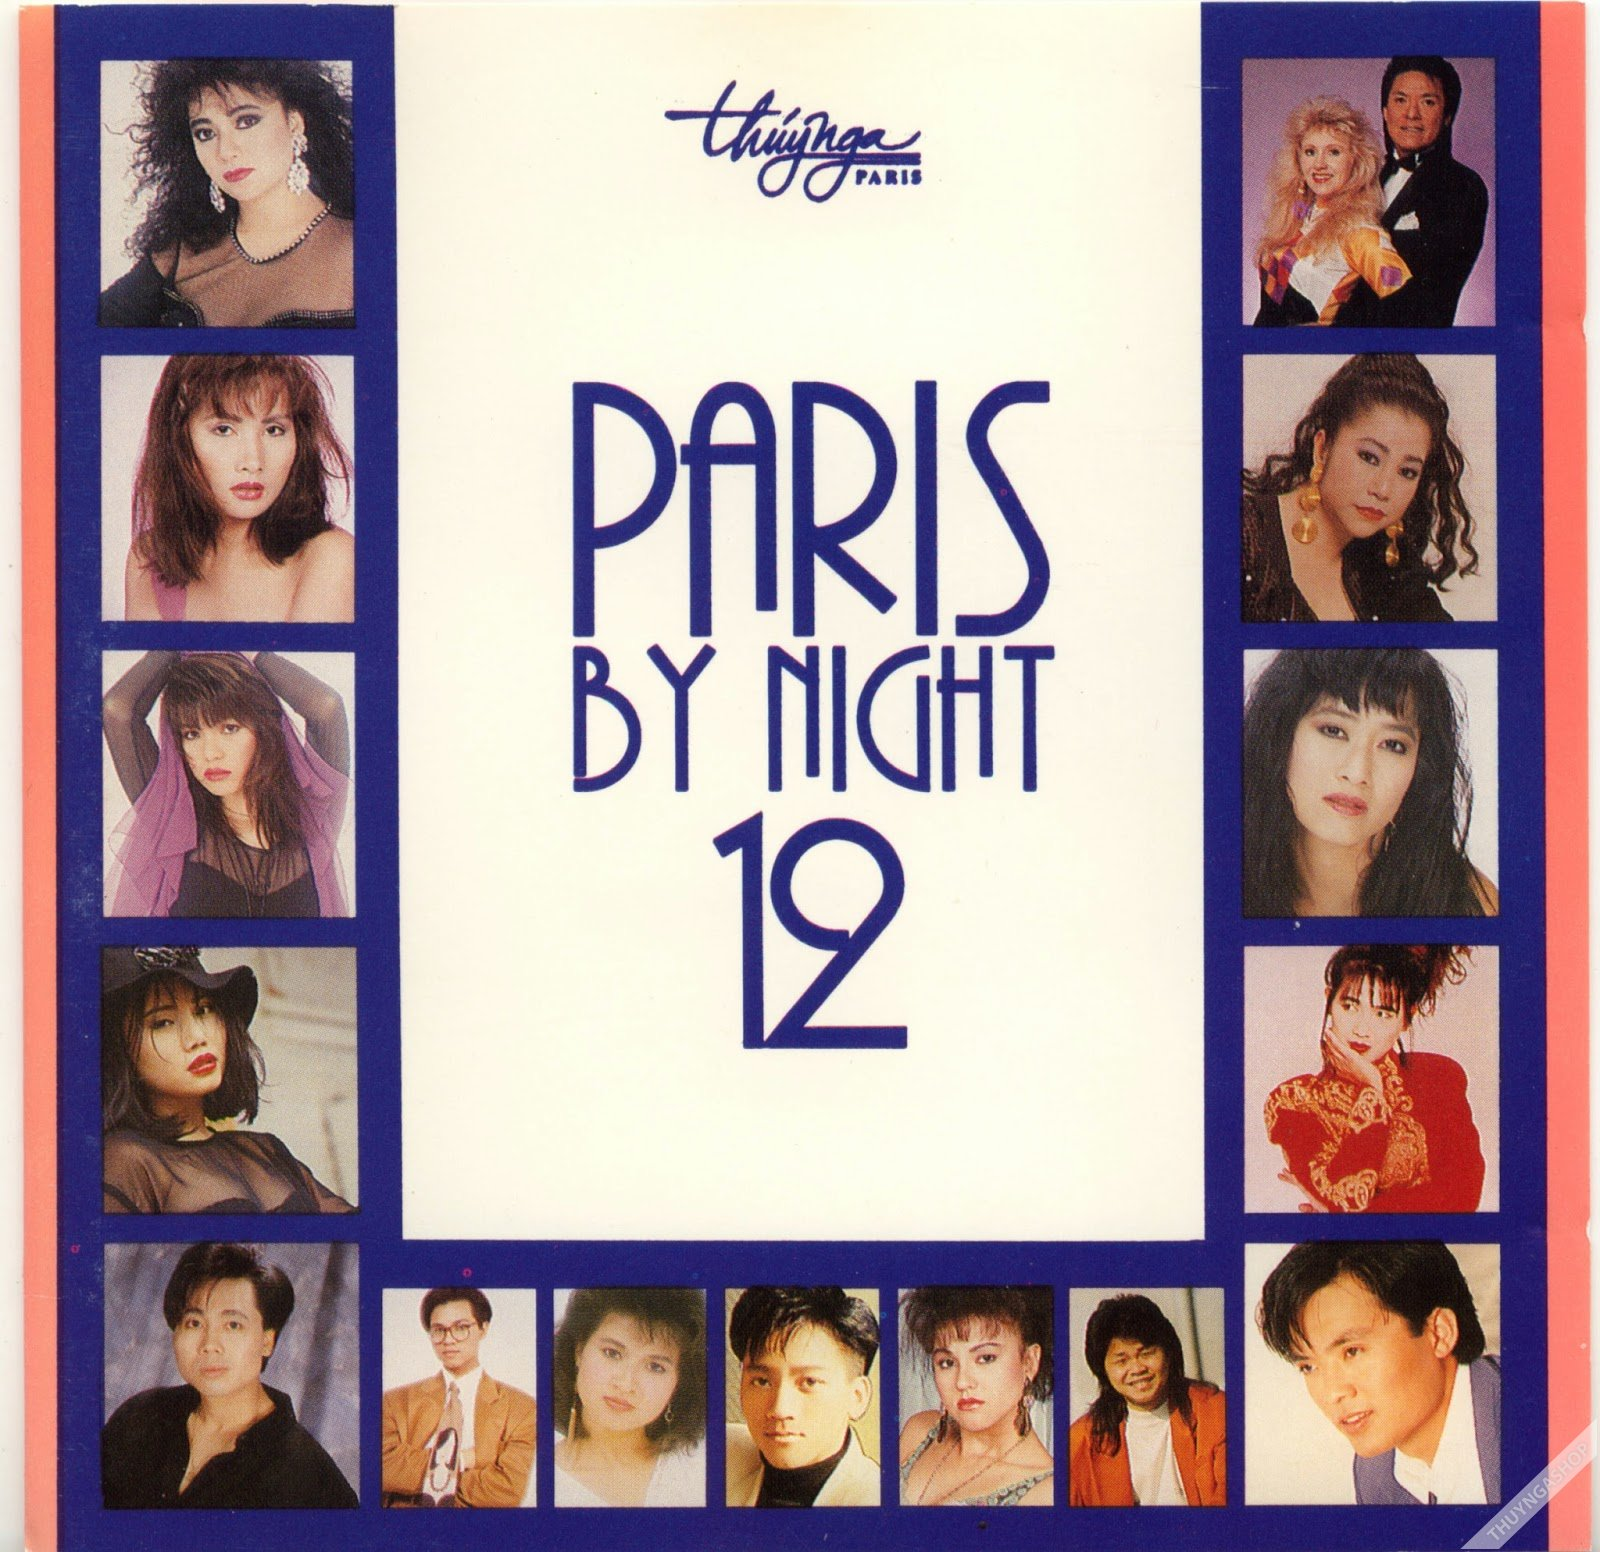 TN012 - Paris By Night 12